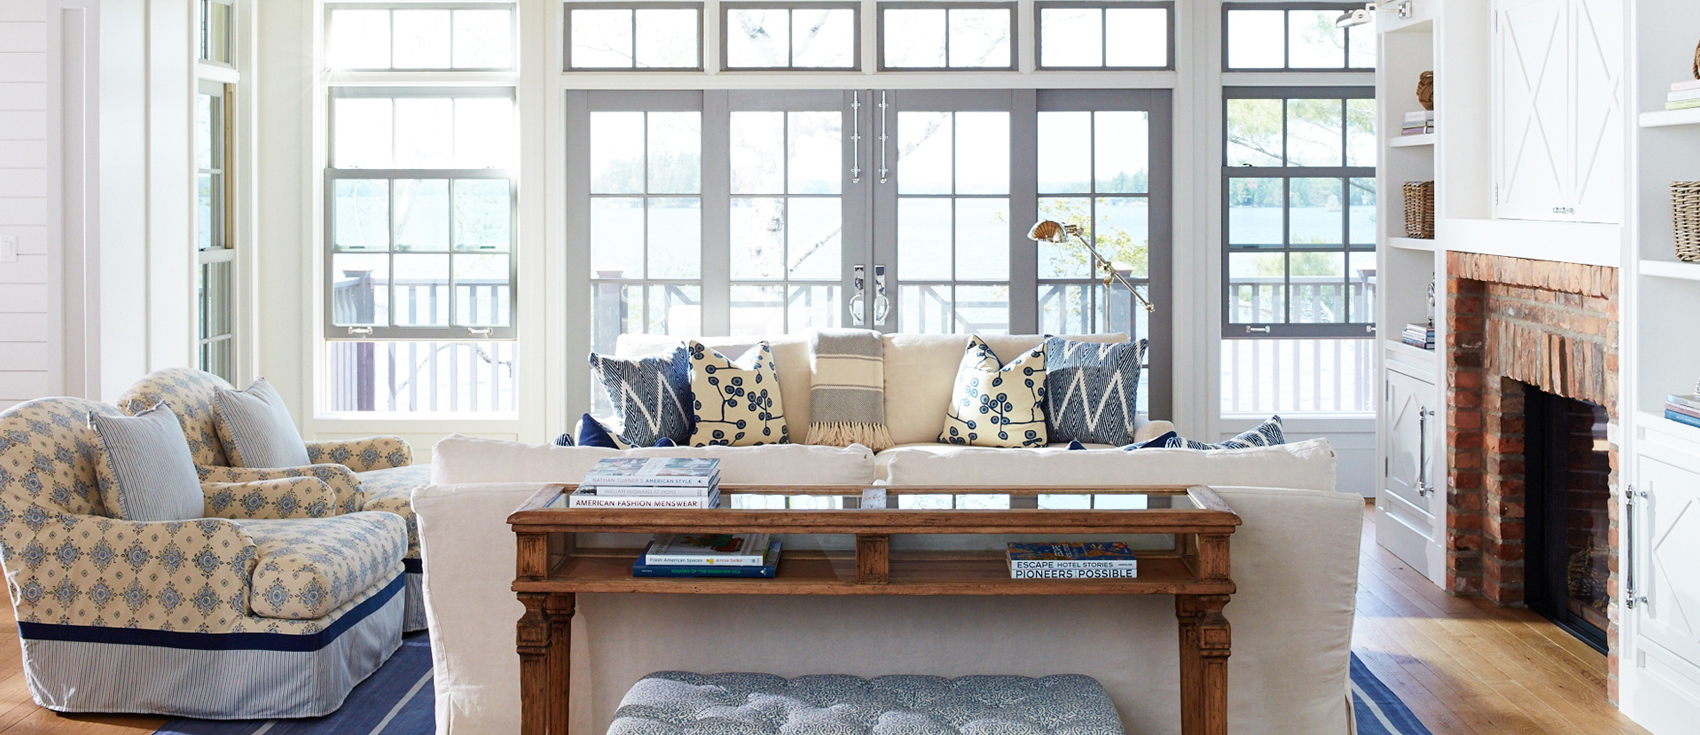 Coastal Decor & Tips on How to Decorate Coastal Style